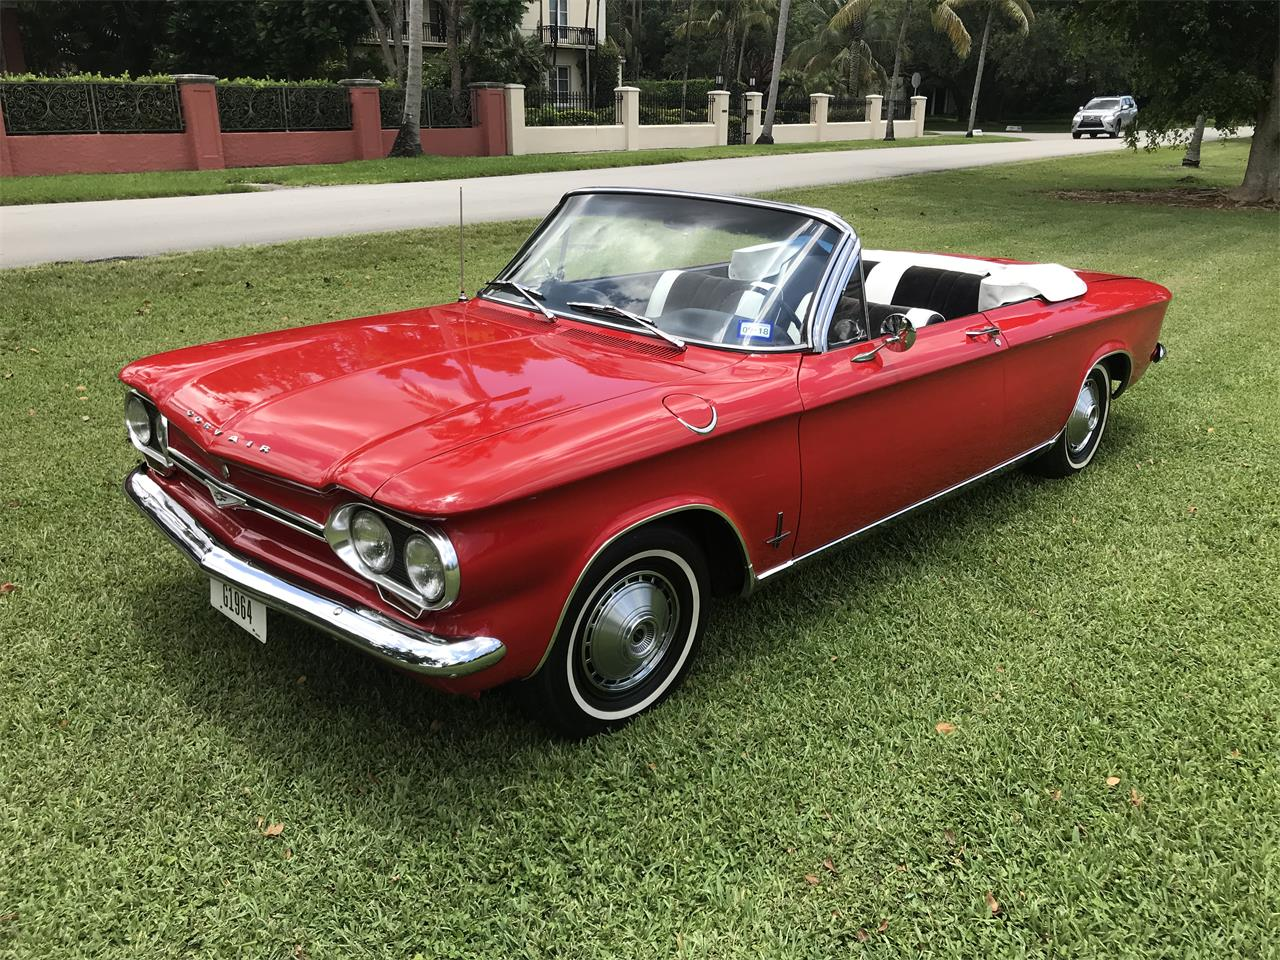 1964 chevrolet corvair monza for sale | classiccars | cc-1150638